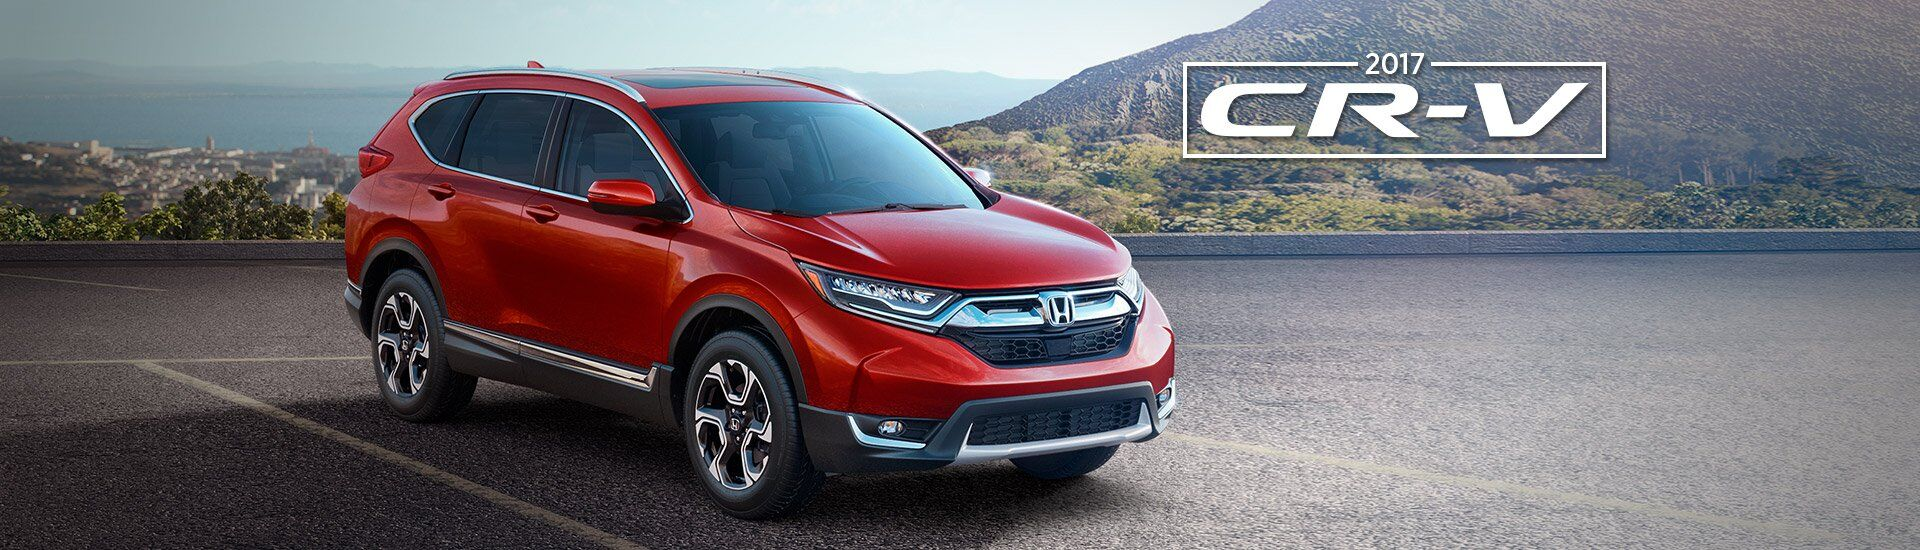 Honda Dealership Moncton Nb Used Cars Moncton Honda